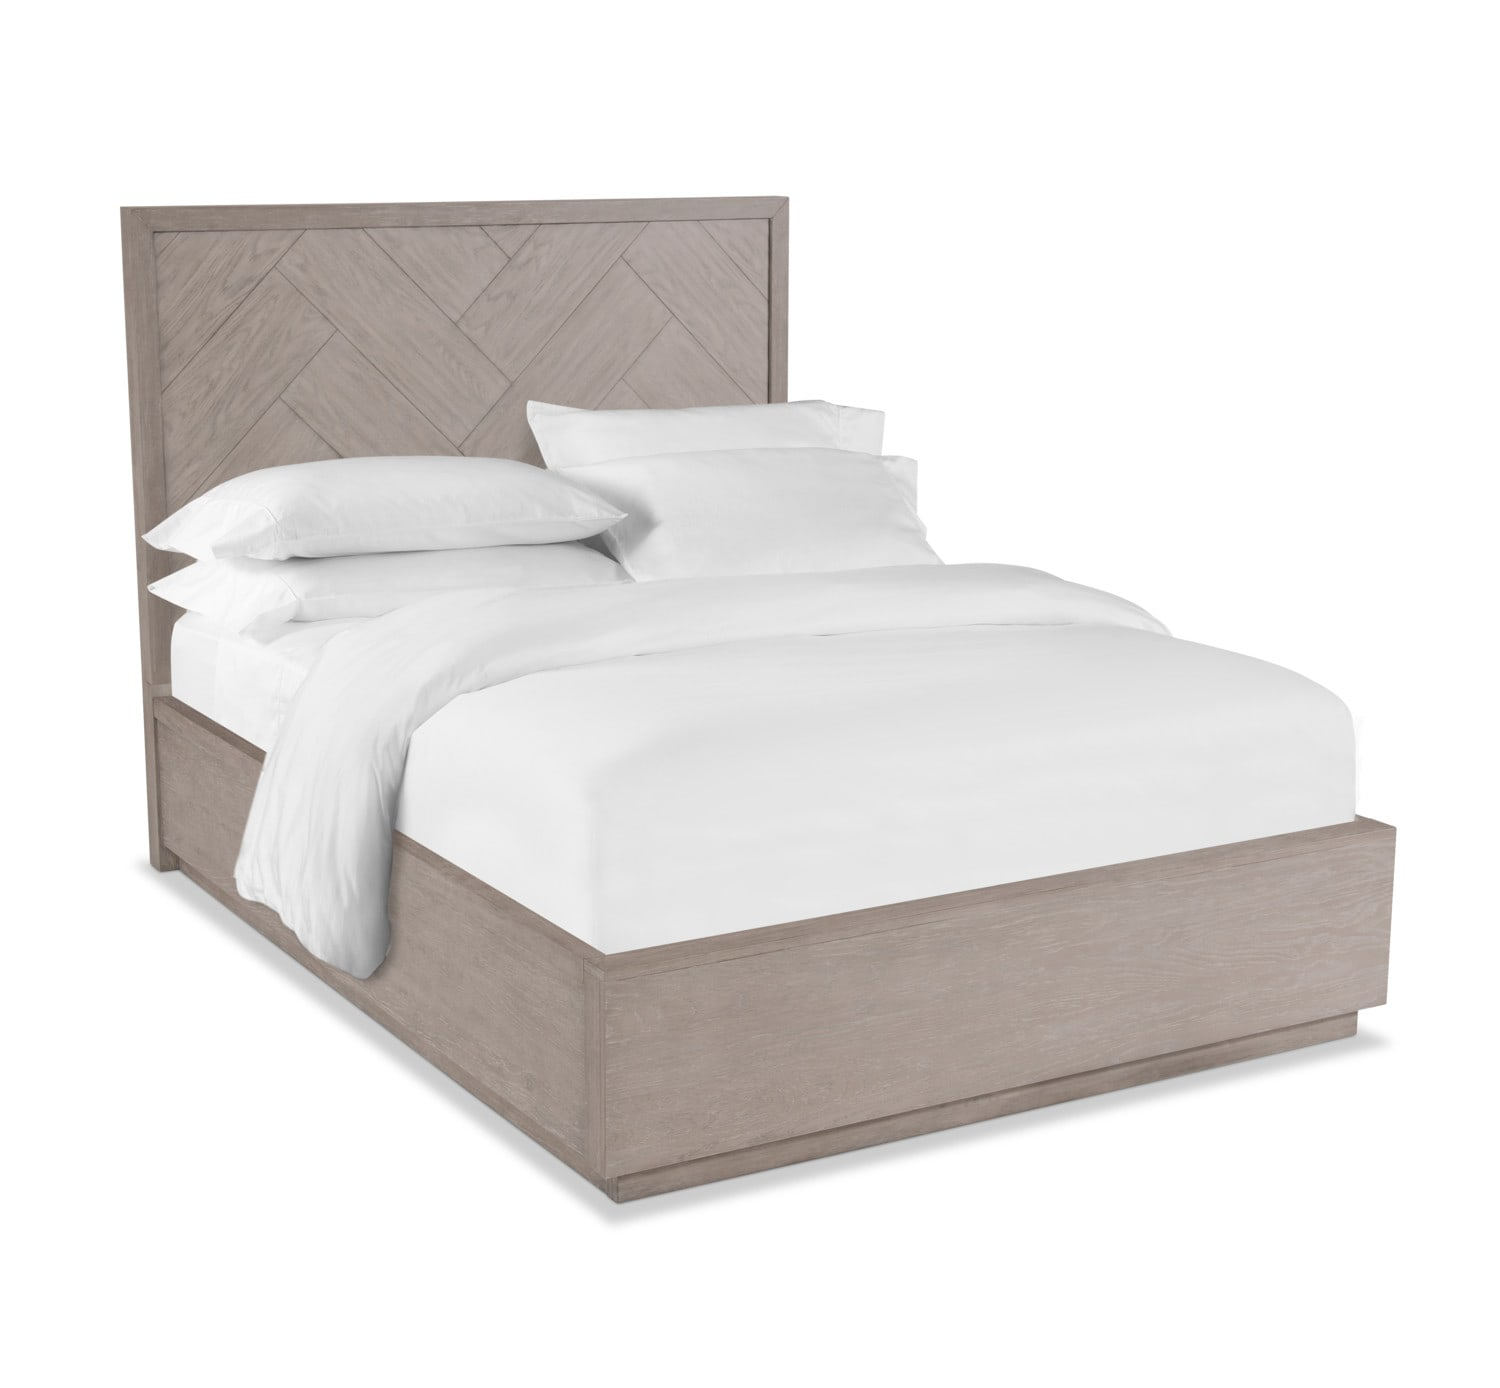 Bedroom Furniture - Zen Queen Bed - Urban Gray